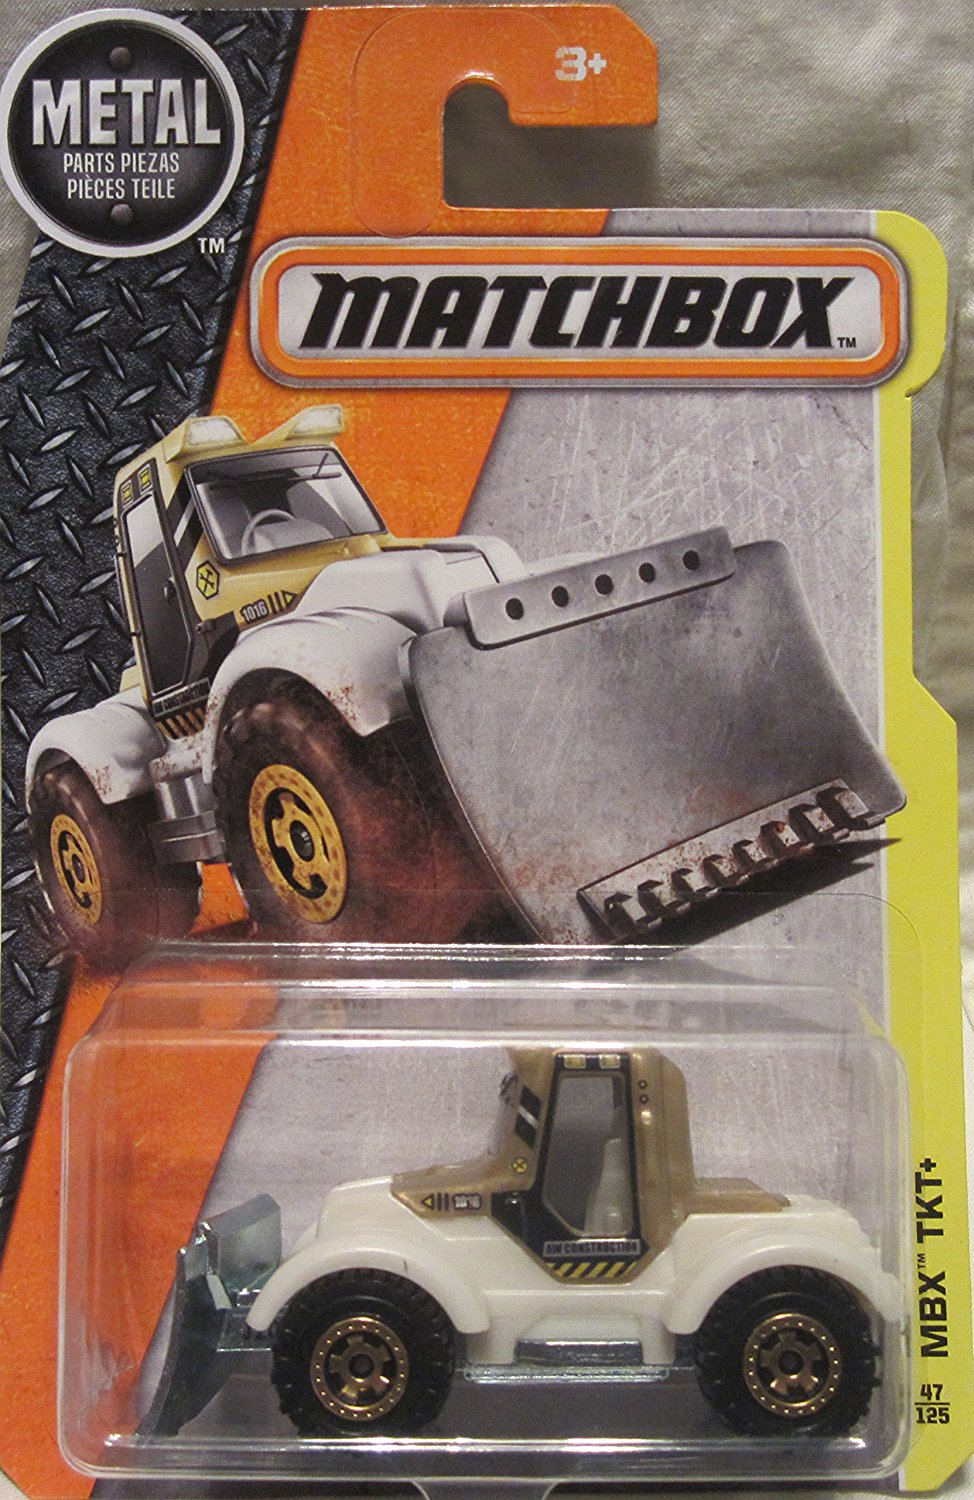 2016 MBX Construction MBX TKT+ (Plow Truck) 47 125, White, 1:64 scaled die-cast plow truck... by